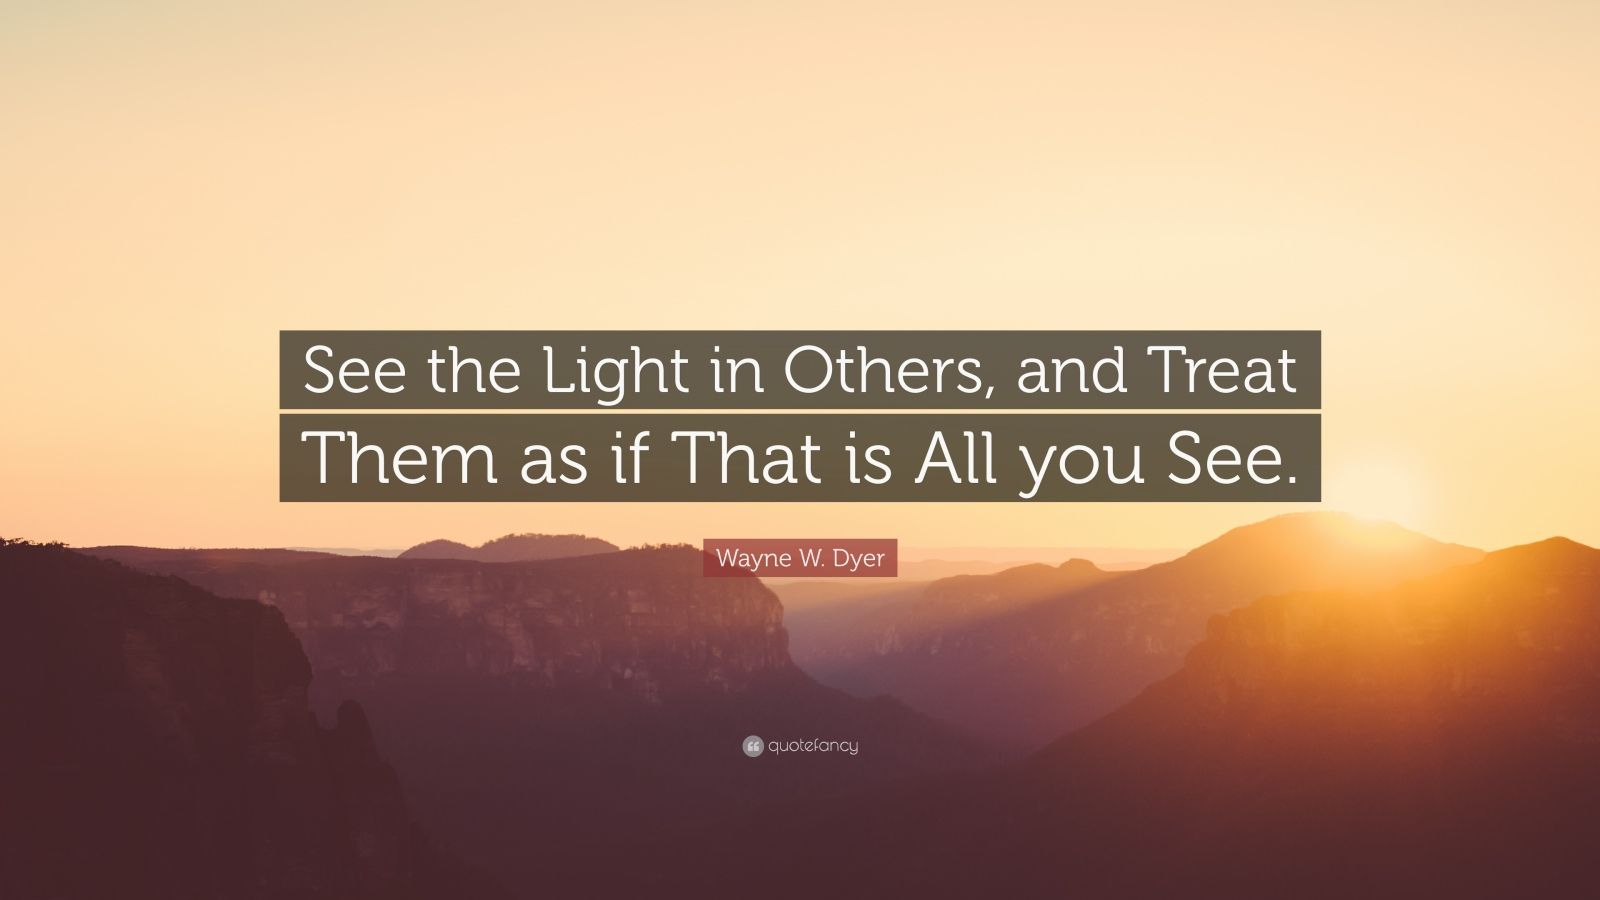 "Wayne W. Dyer Quote: ""See the Light in Others, and Treat Them as if That is All you See."""